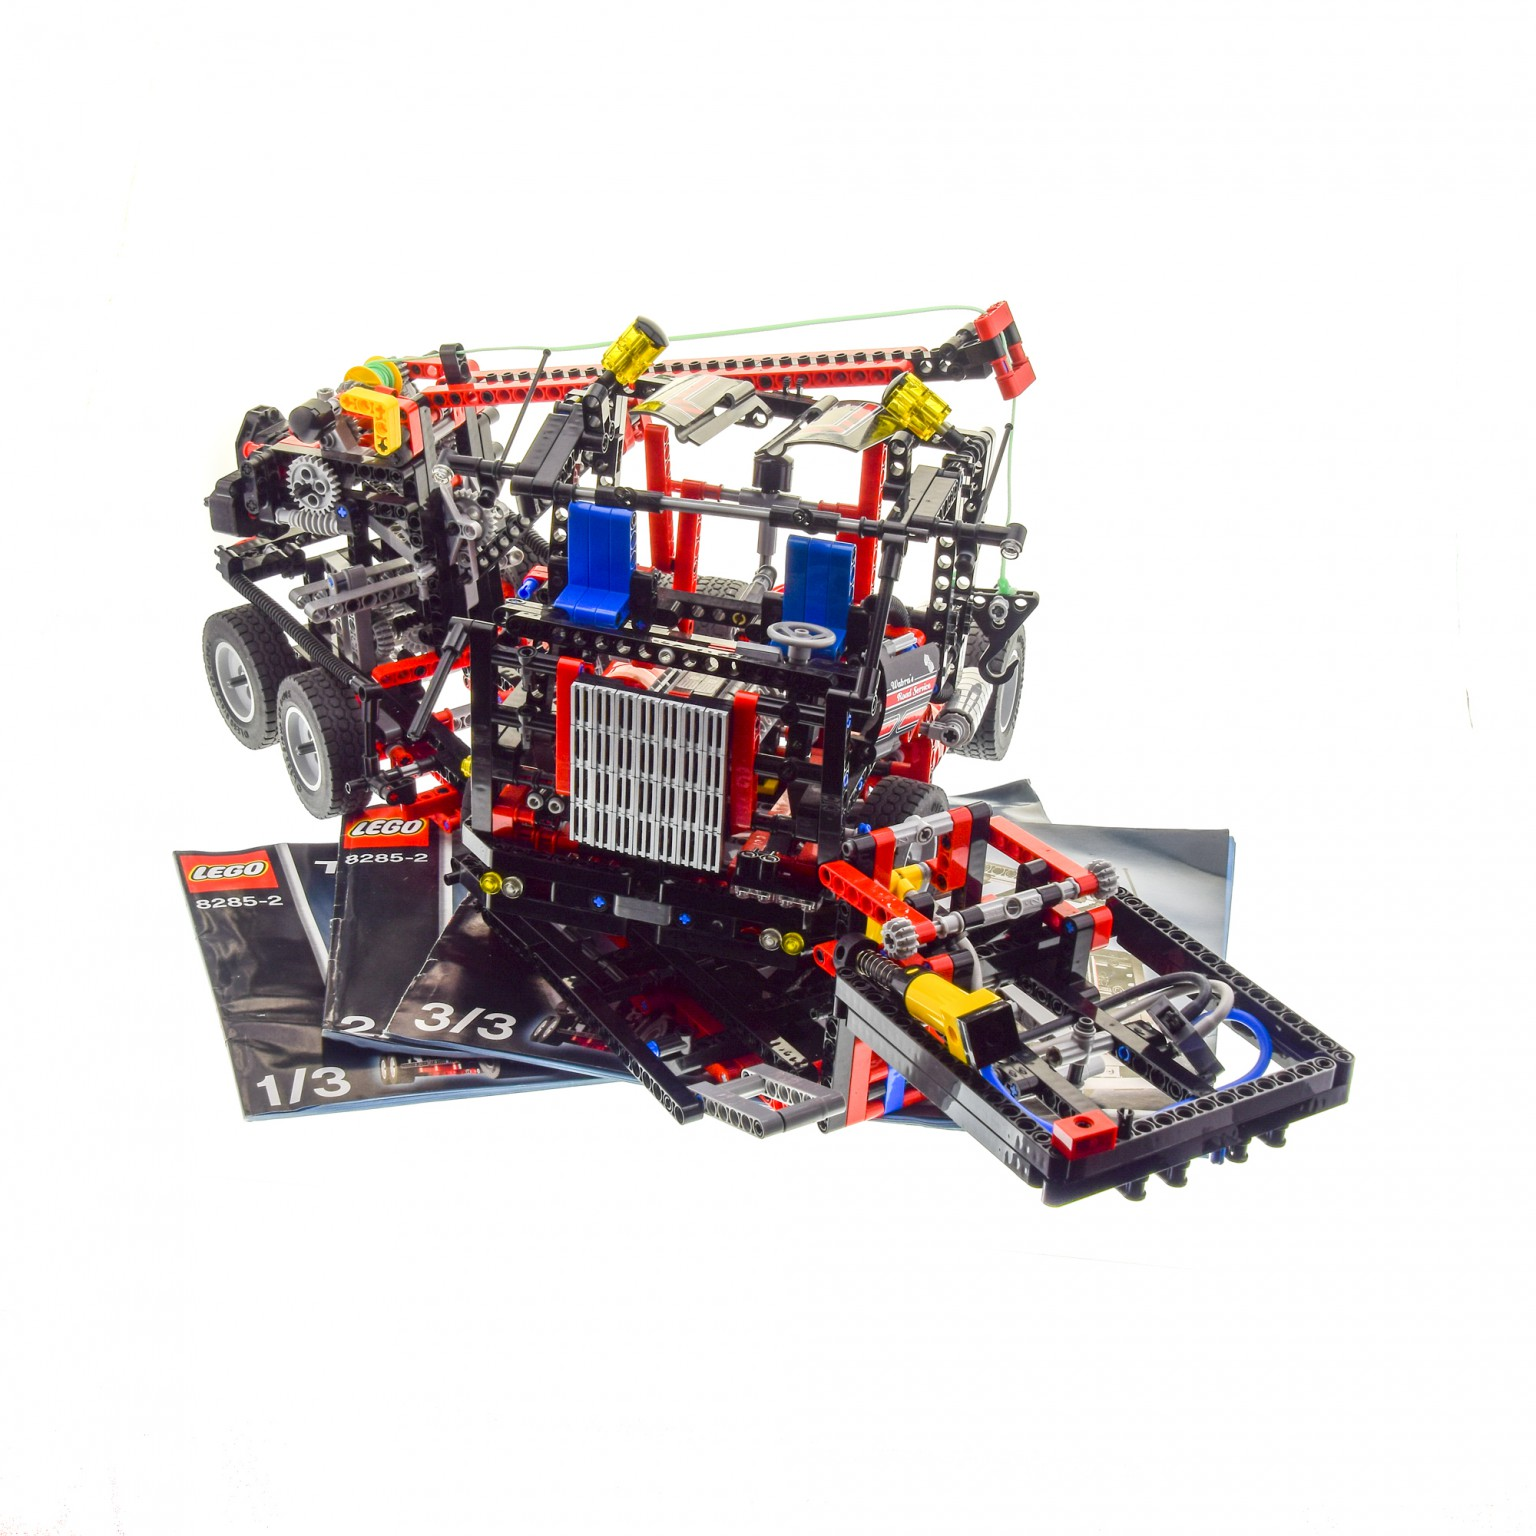 1 x lego technic set modell traffic 8285 tow truck abschlepp wagen lkw mit auflieger schwarz rot. Black Bedroom Furniture Sets. Home Design Ideas